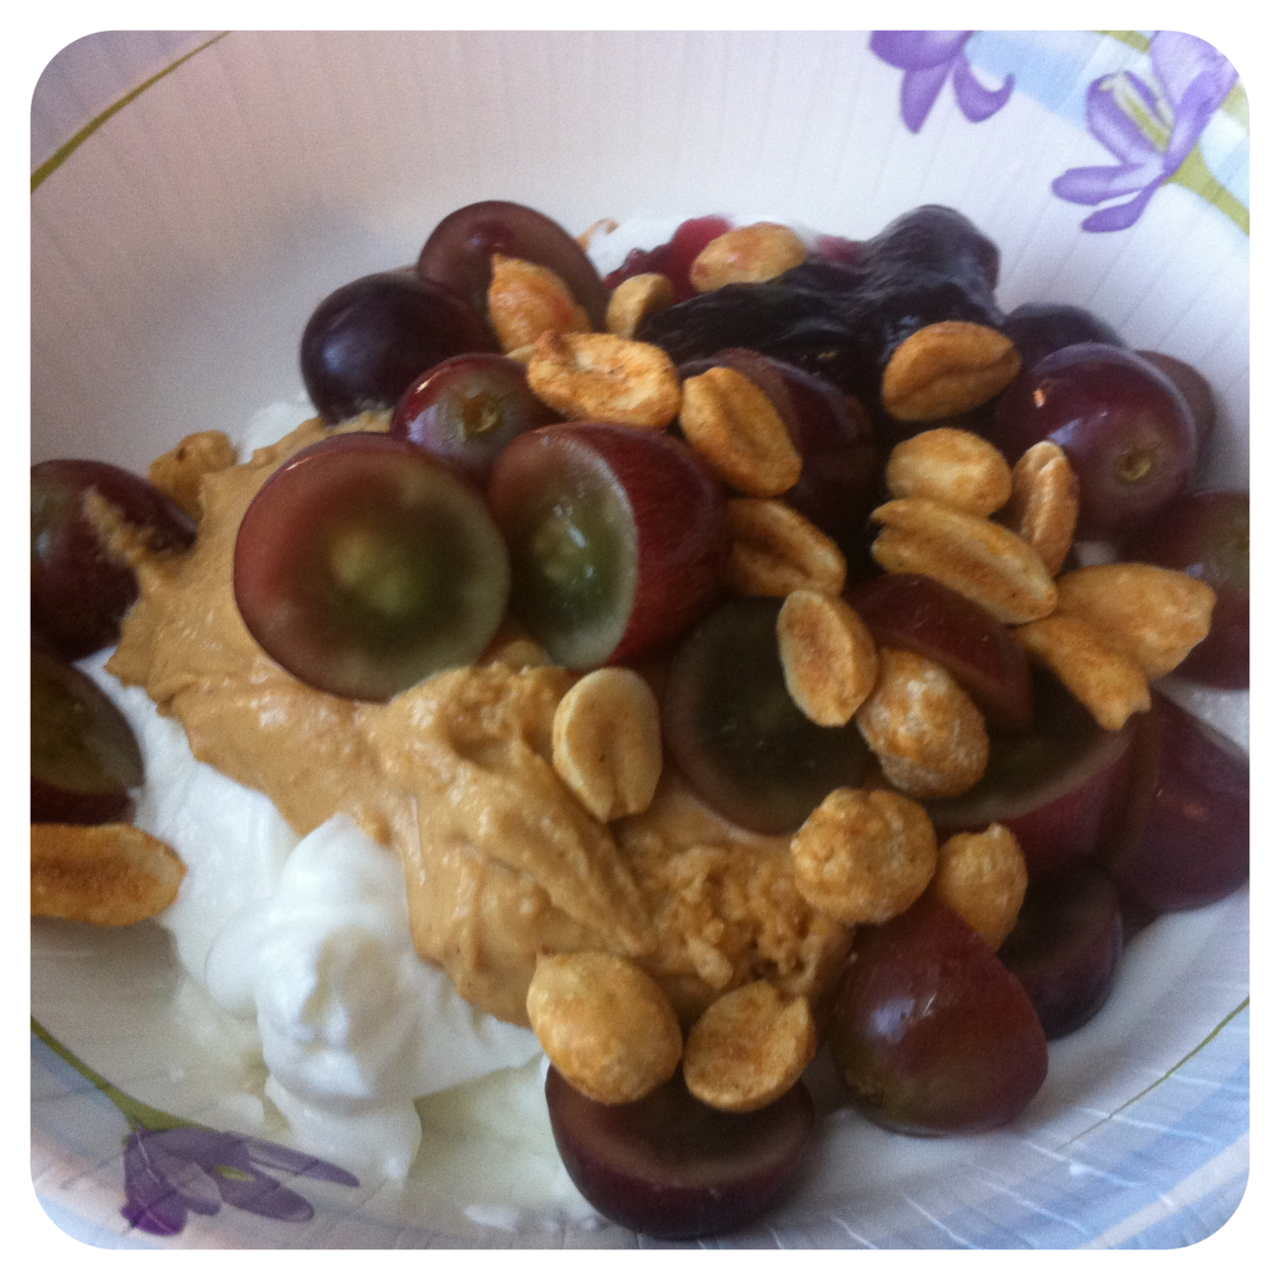 Weight Watchers Breakfast Idea - PB + J Greek Yogurt 6 pts. May try it ...